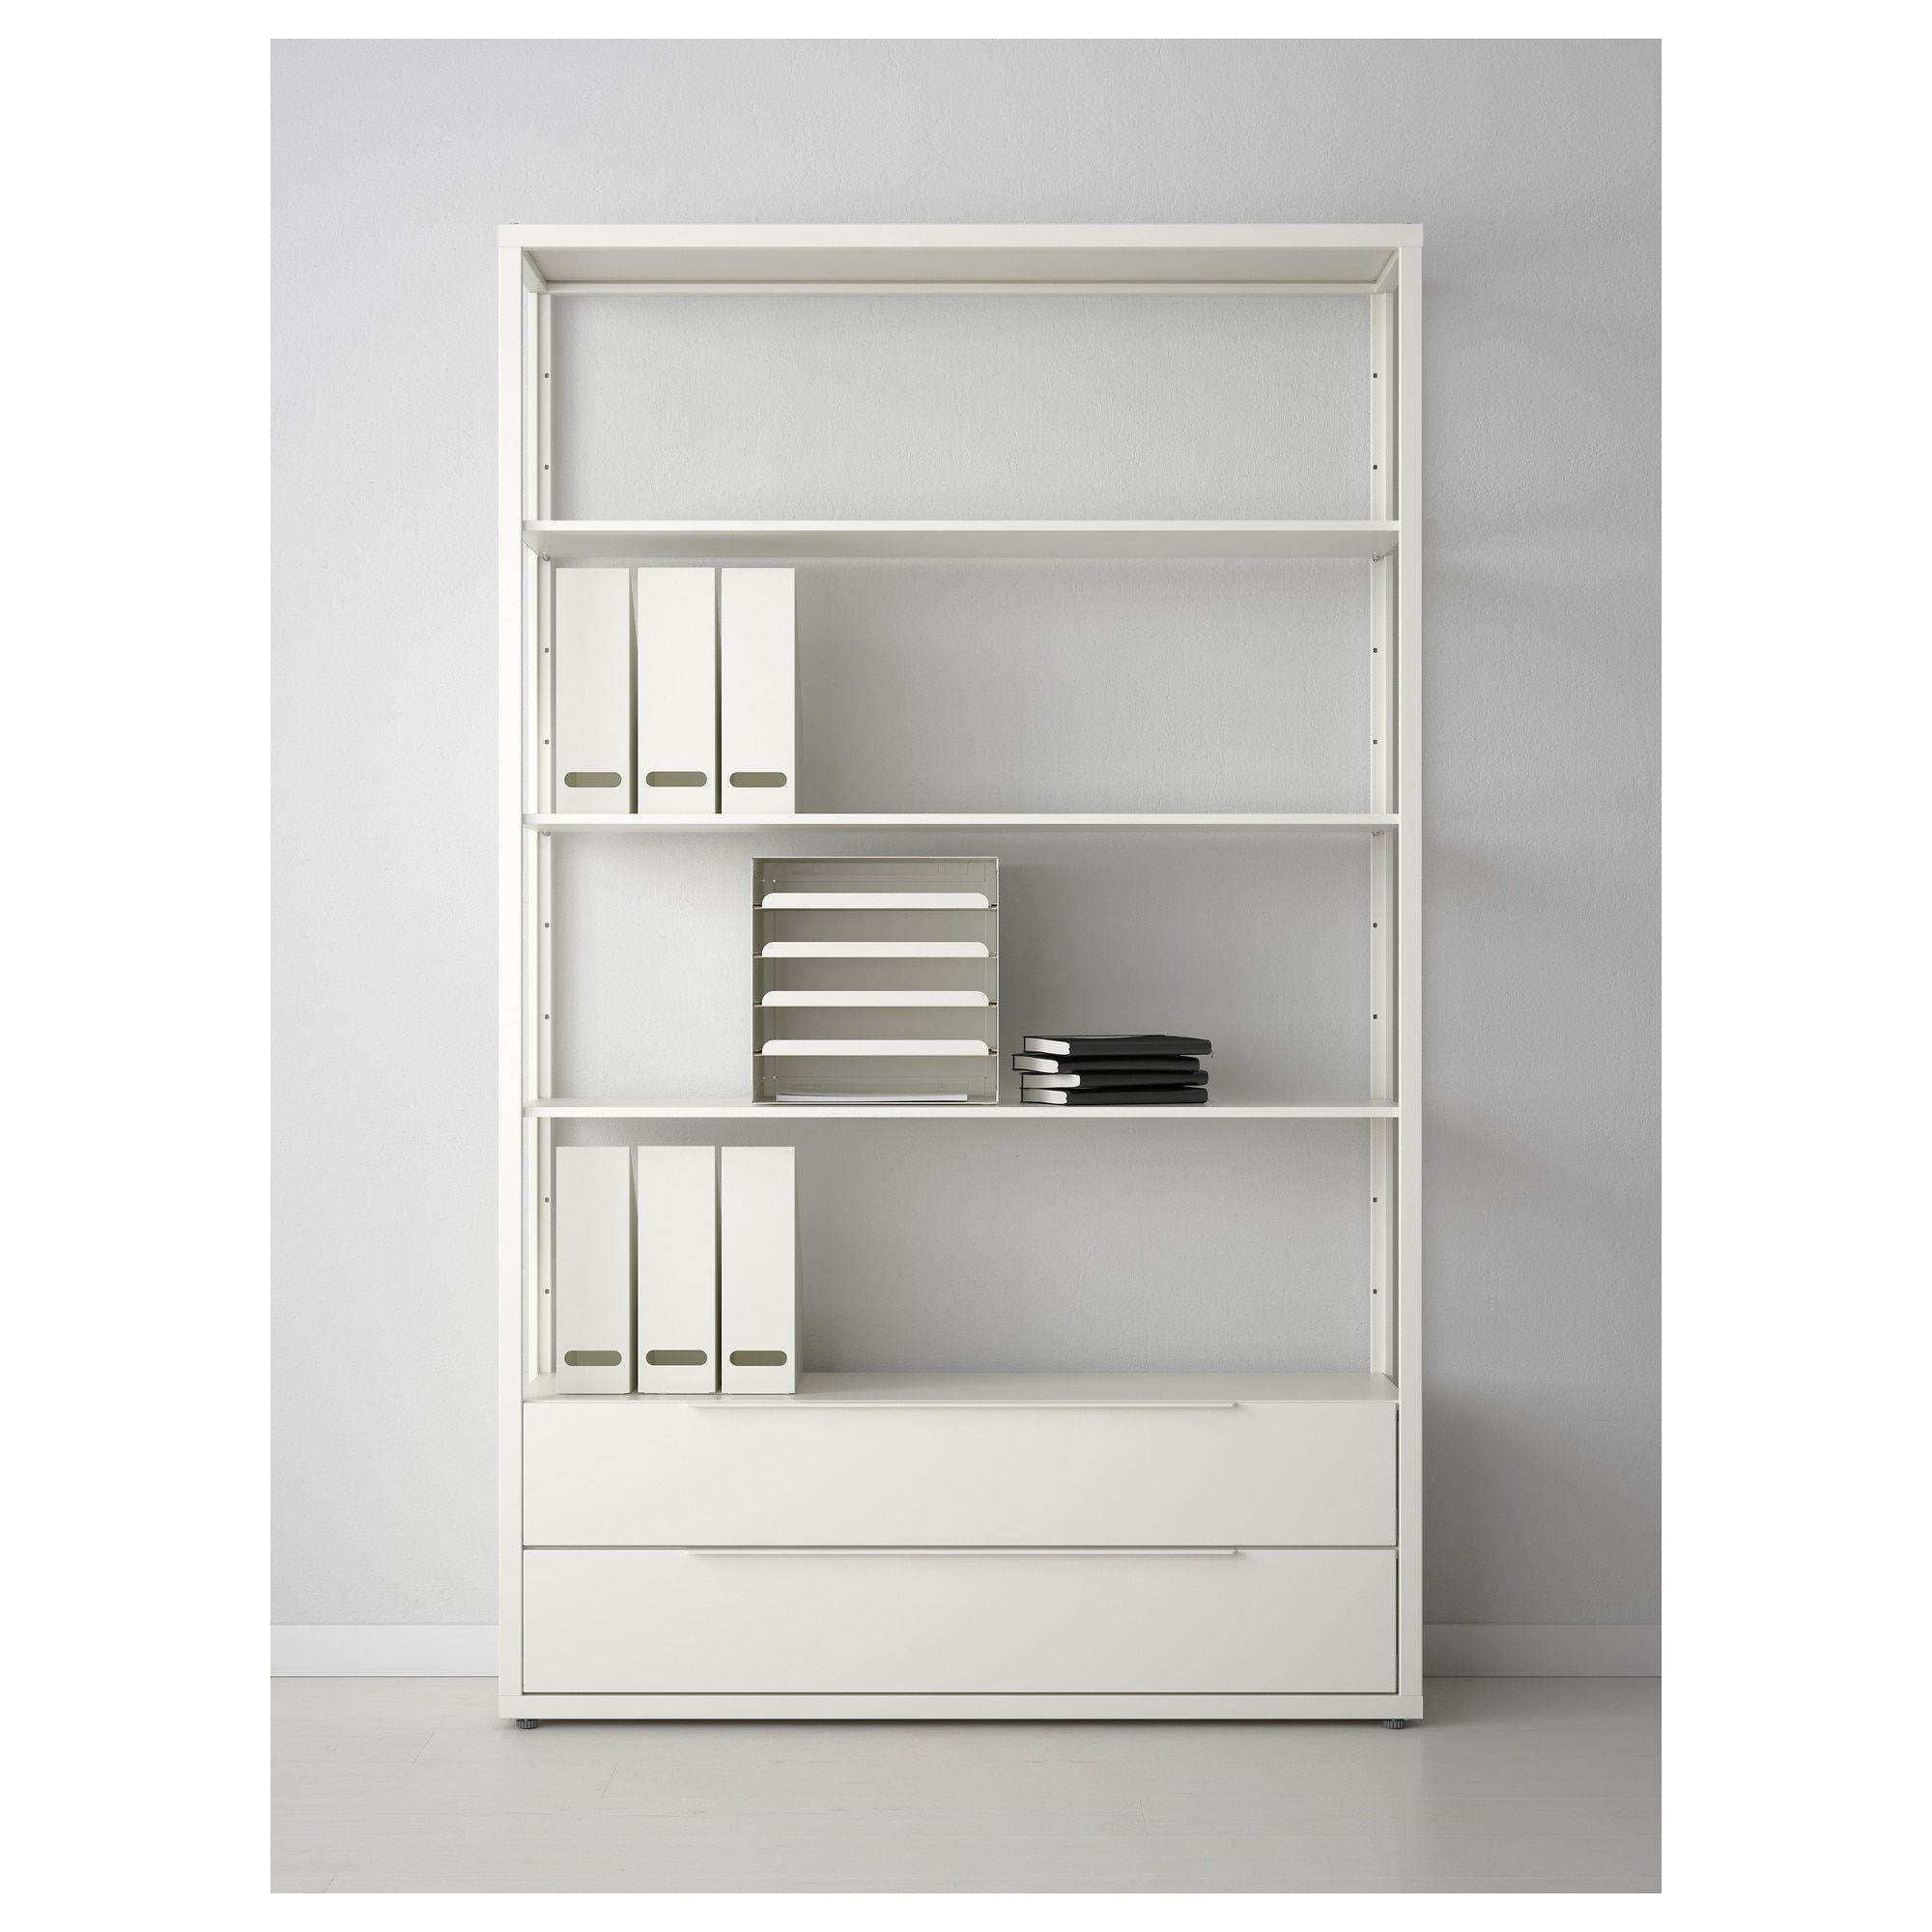 FJÄLKINGE Shelf unit with drawers, white, 46 1/2x13 3/4x76